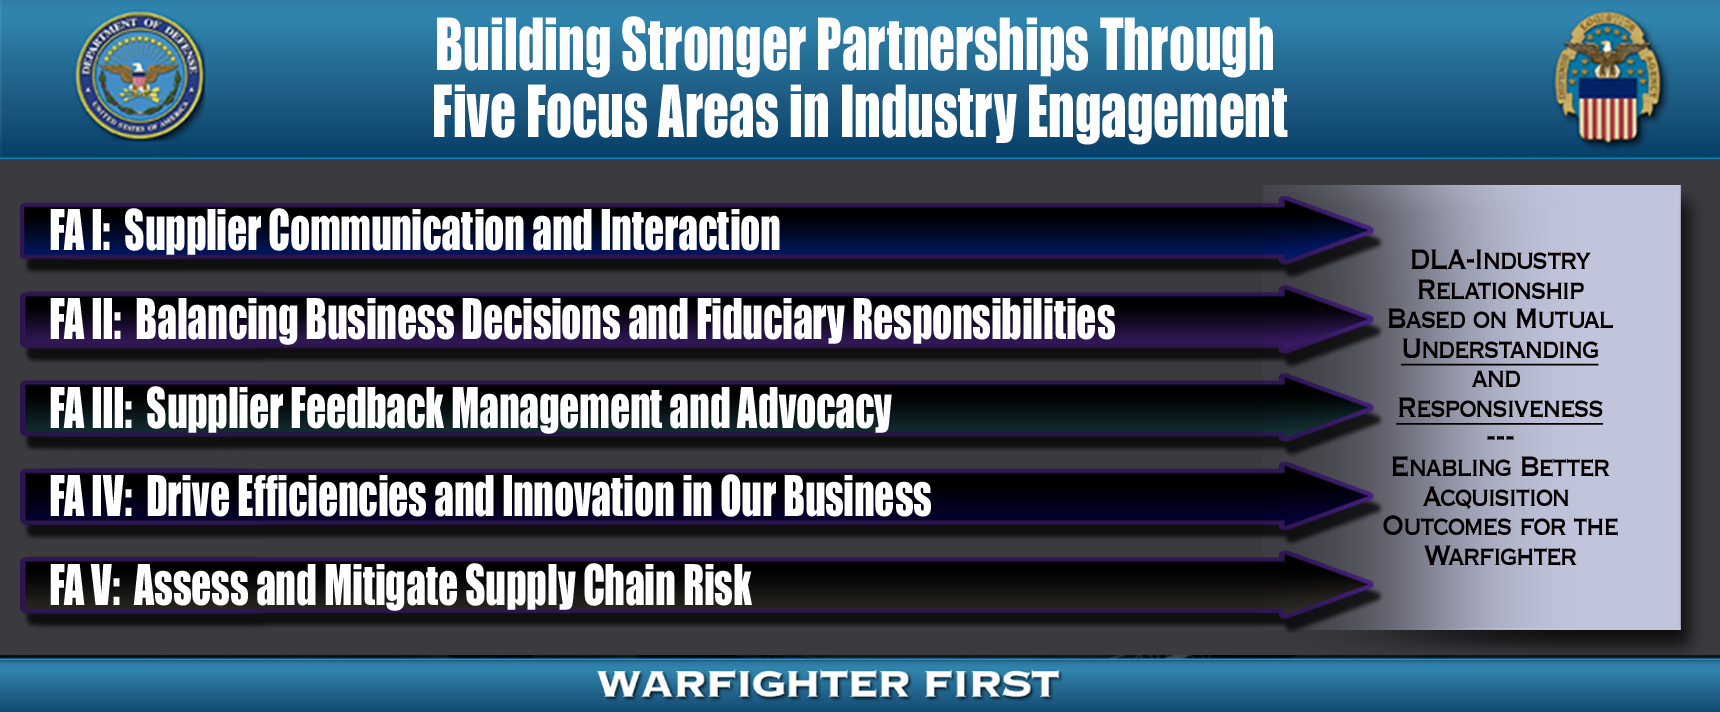 Each Industry Engagement Focus Area is listed